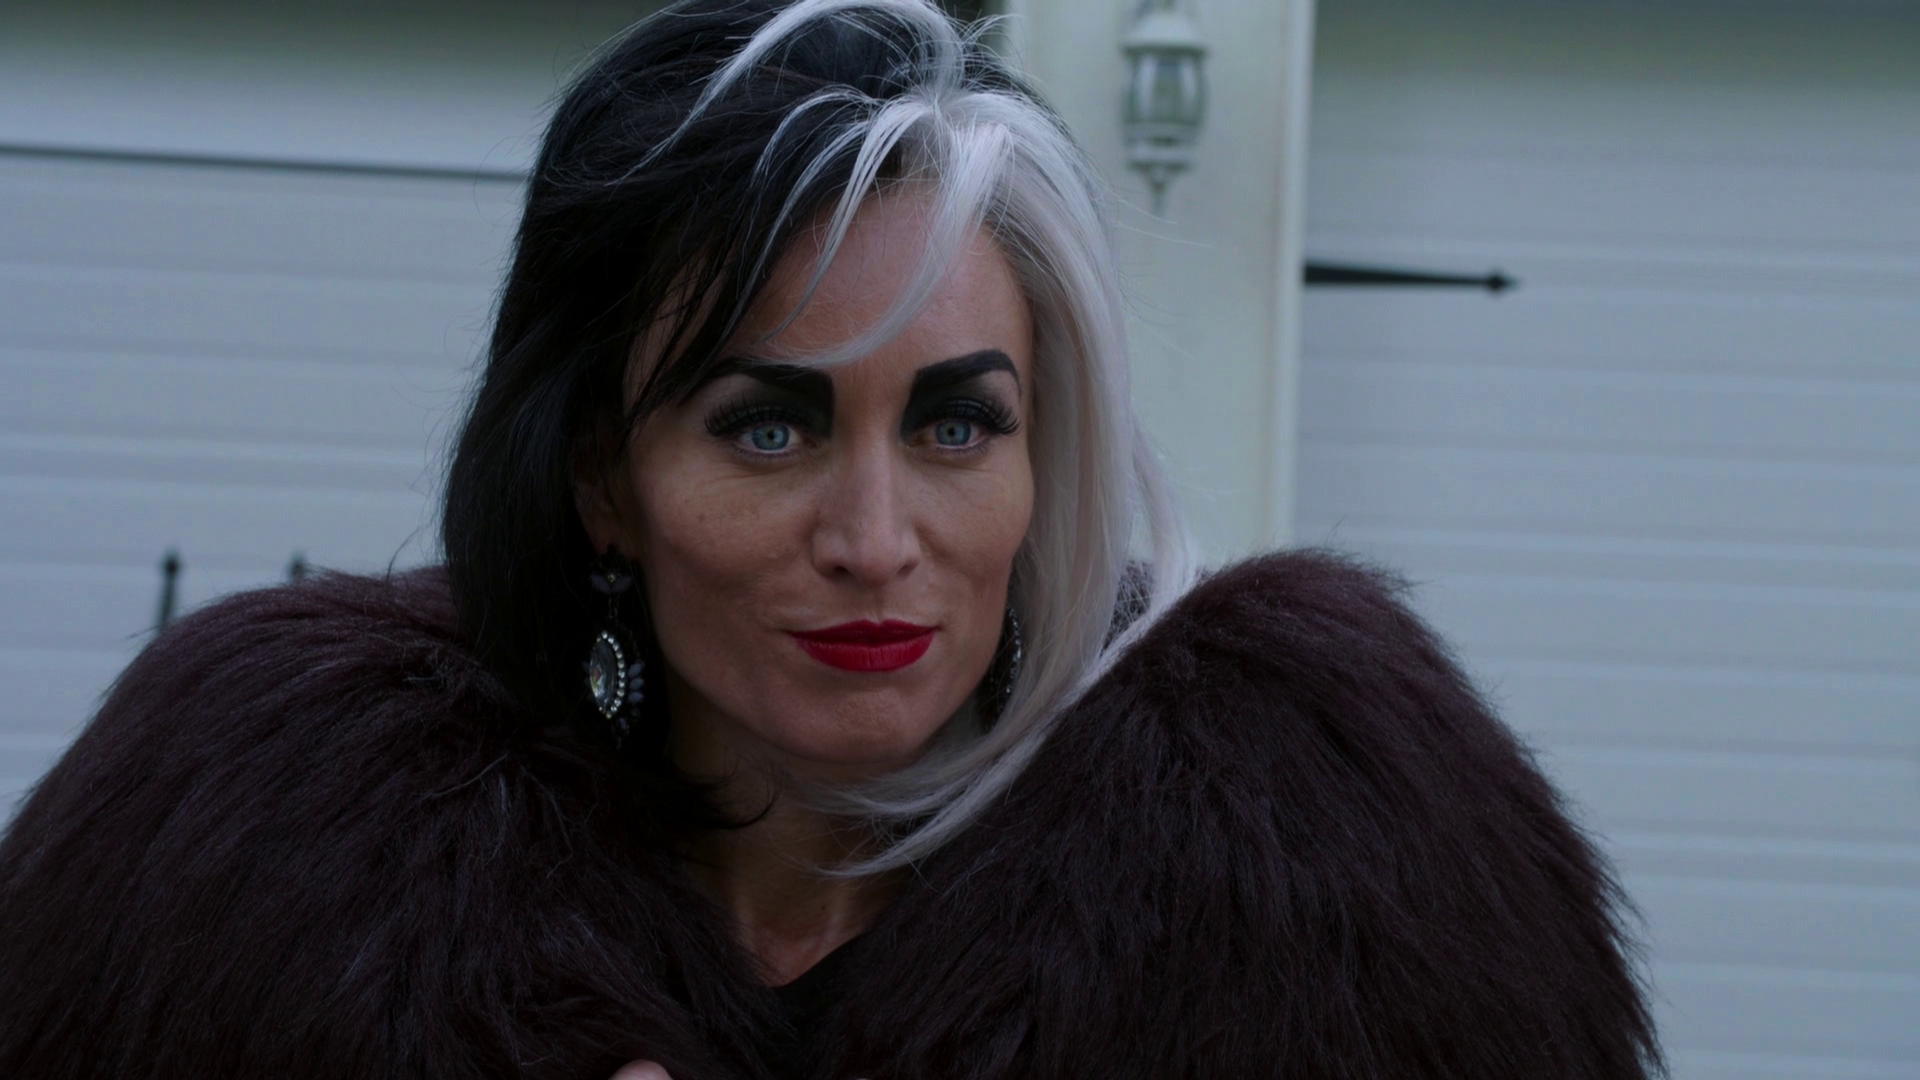 5cbb99df757f1 Cruella De Vil | Once Upon a Time Wiki | FANDOM powered by Wikia